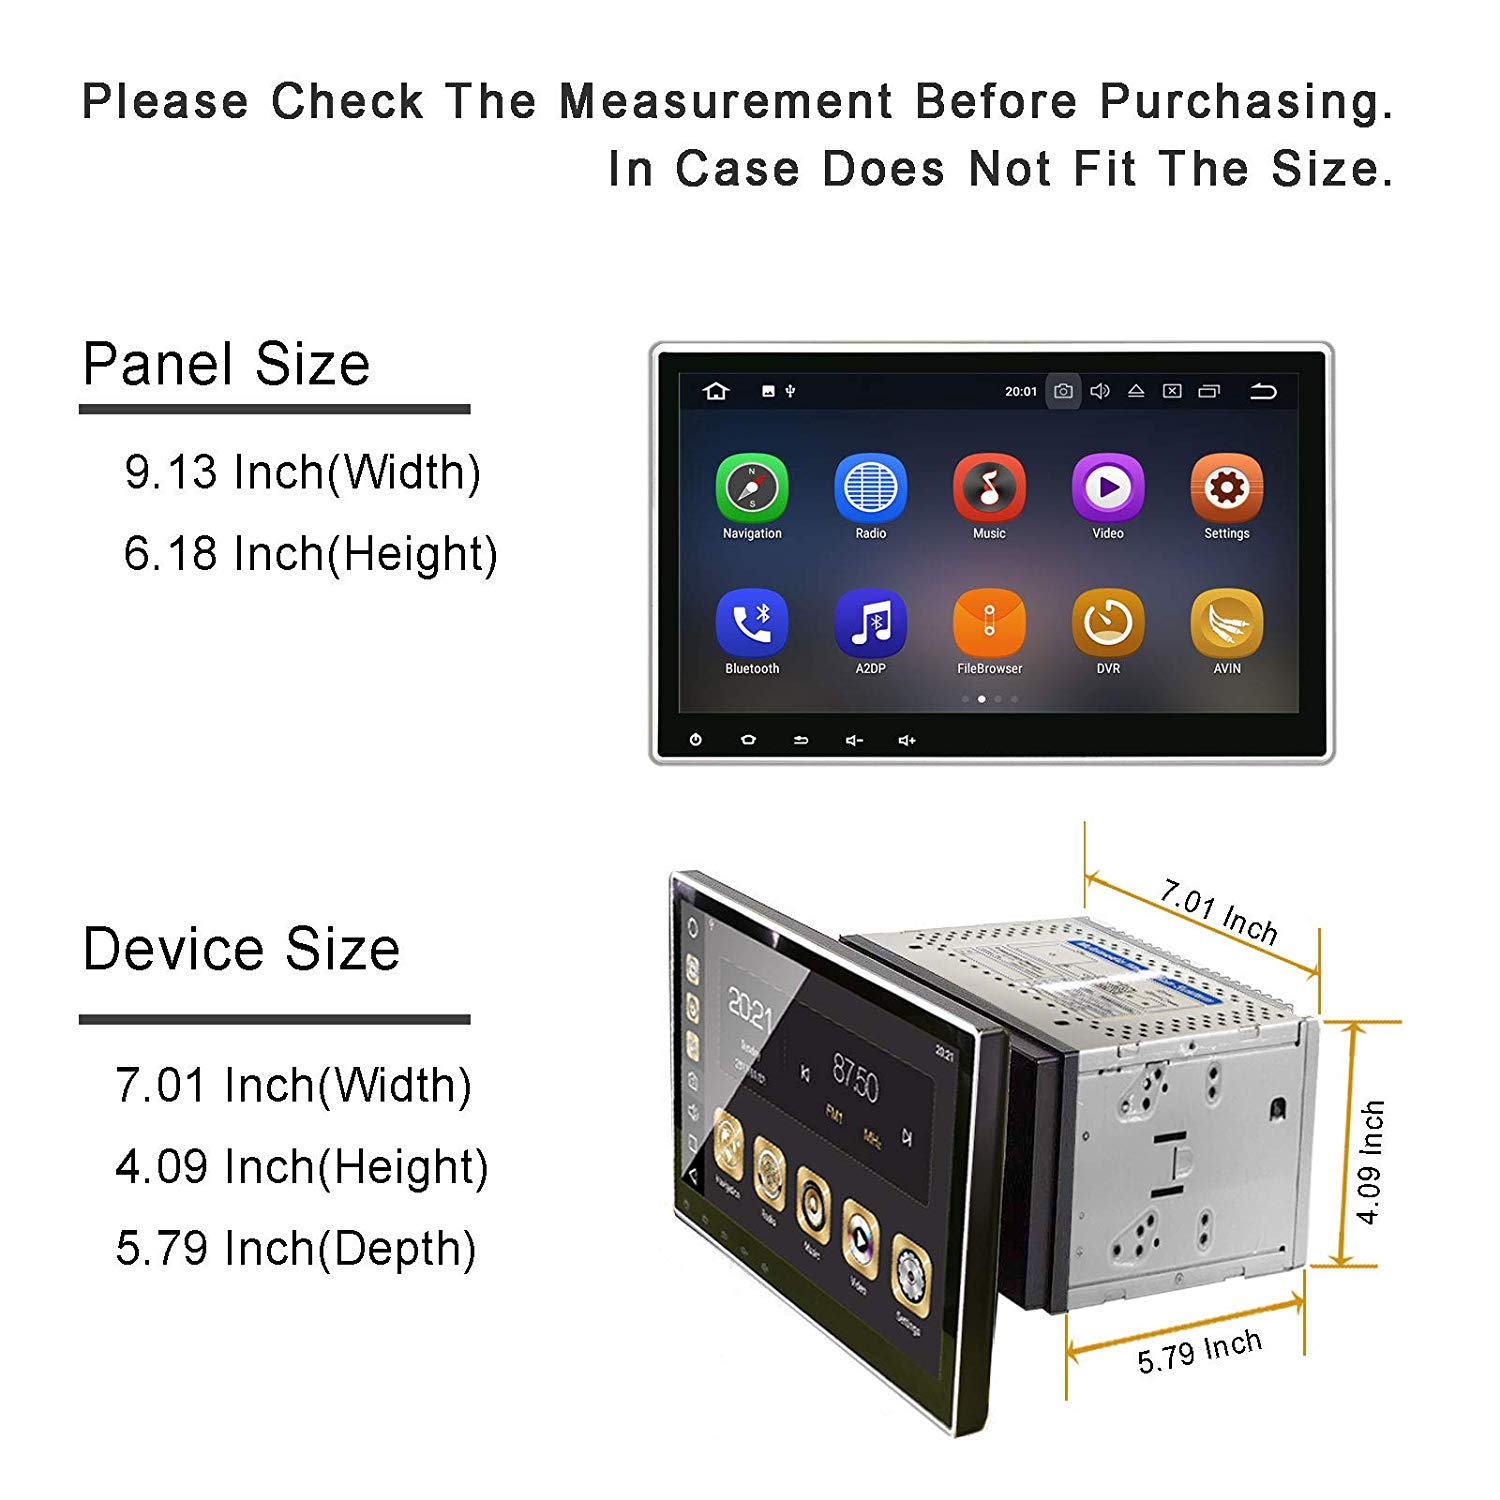 T-One 10 1 Universal Car Stereo,PX3,4 Core,RAM 2GB,ROM 16GB,Android 7 1  Aftermarket Radio,Double Din Soundstream Car Stereo, Bluetooth 4 0,10 1  Large